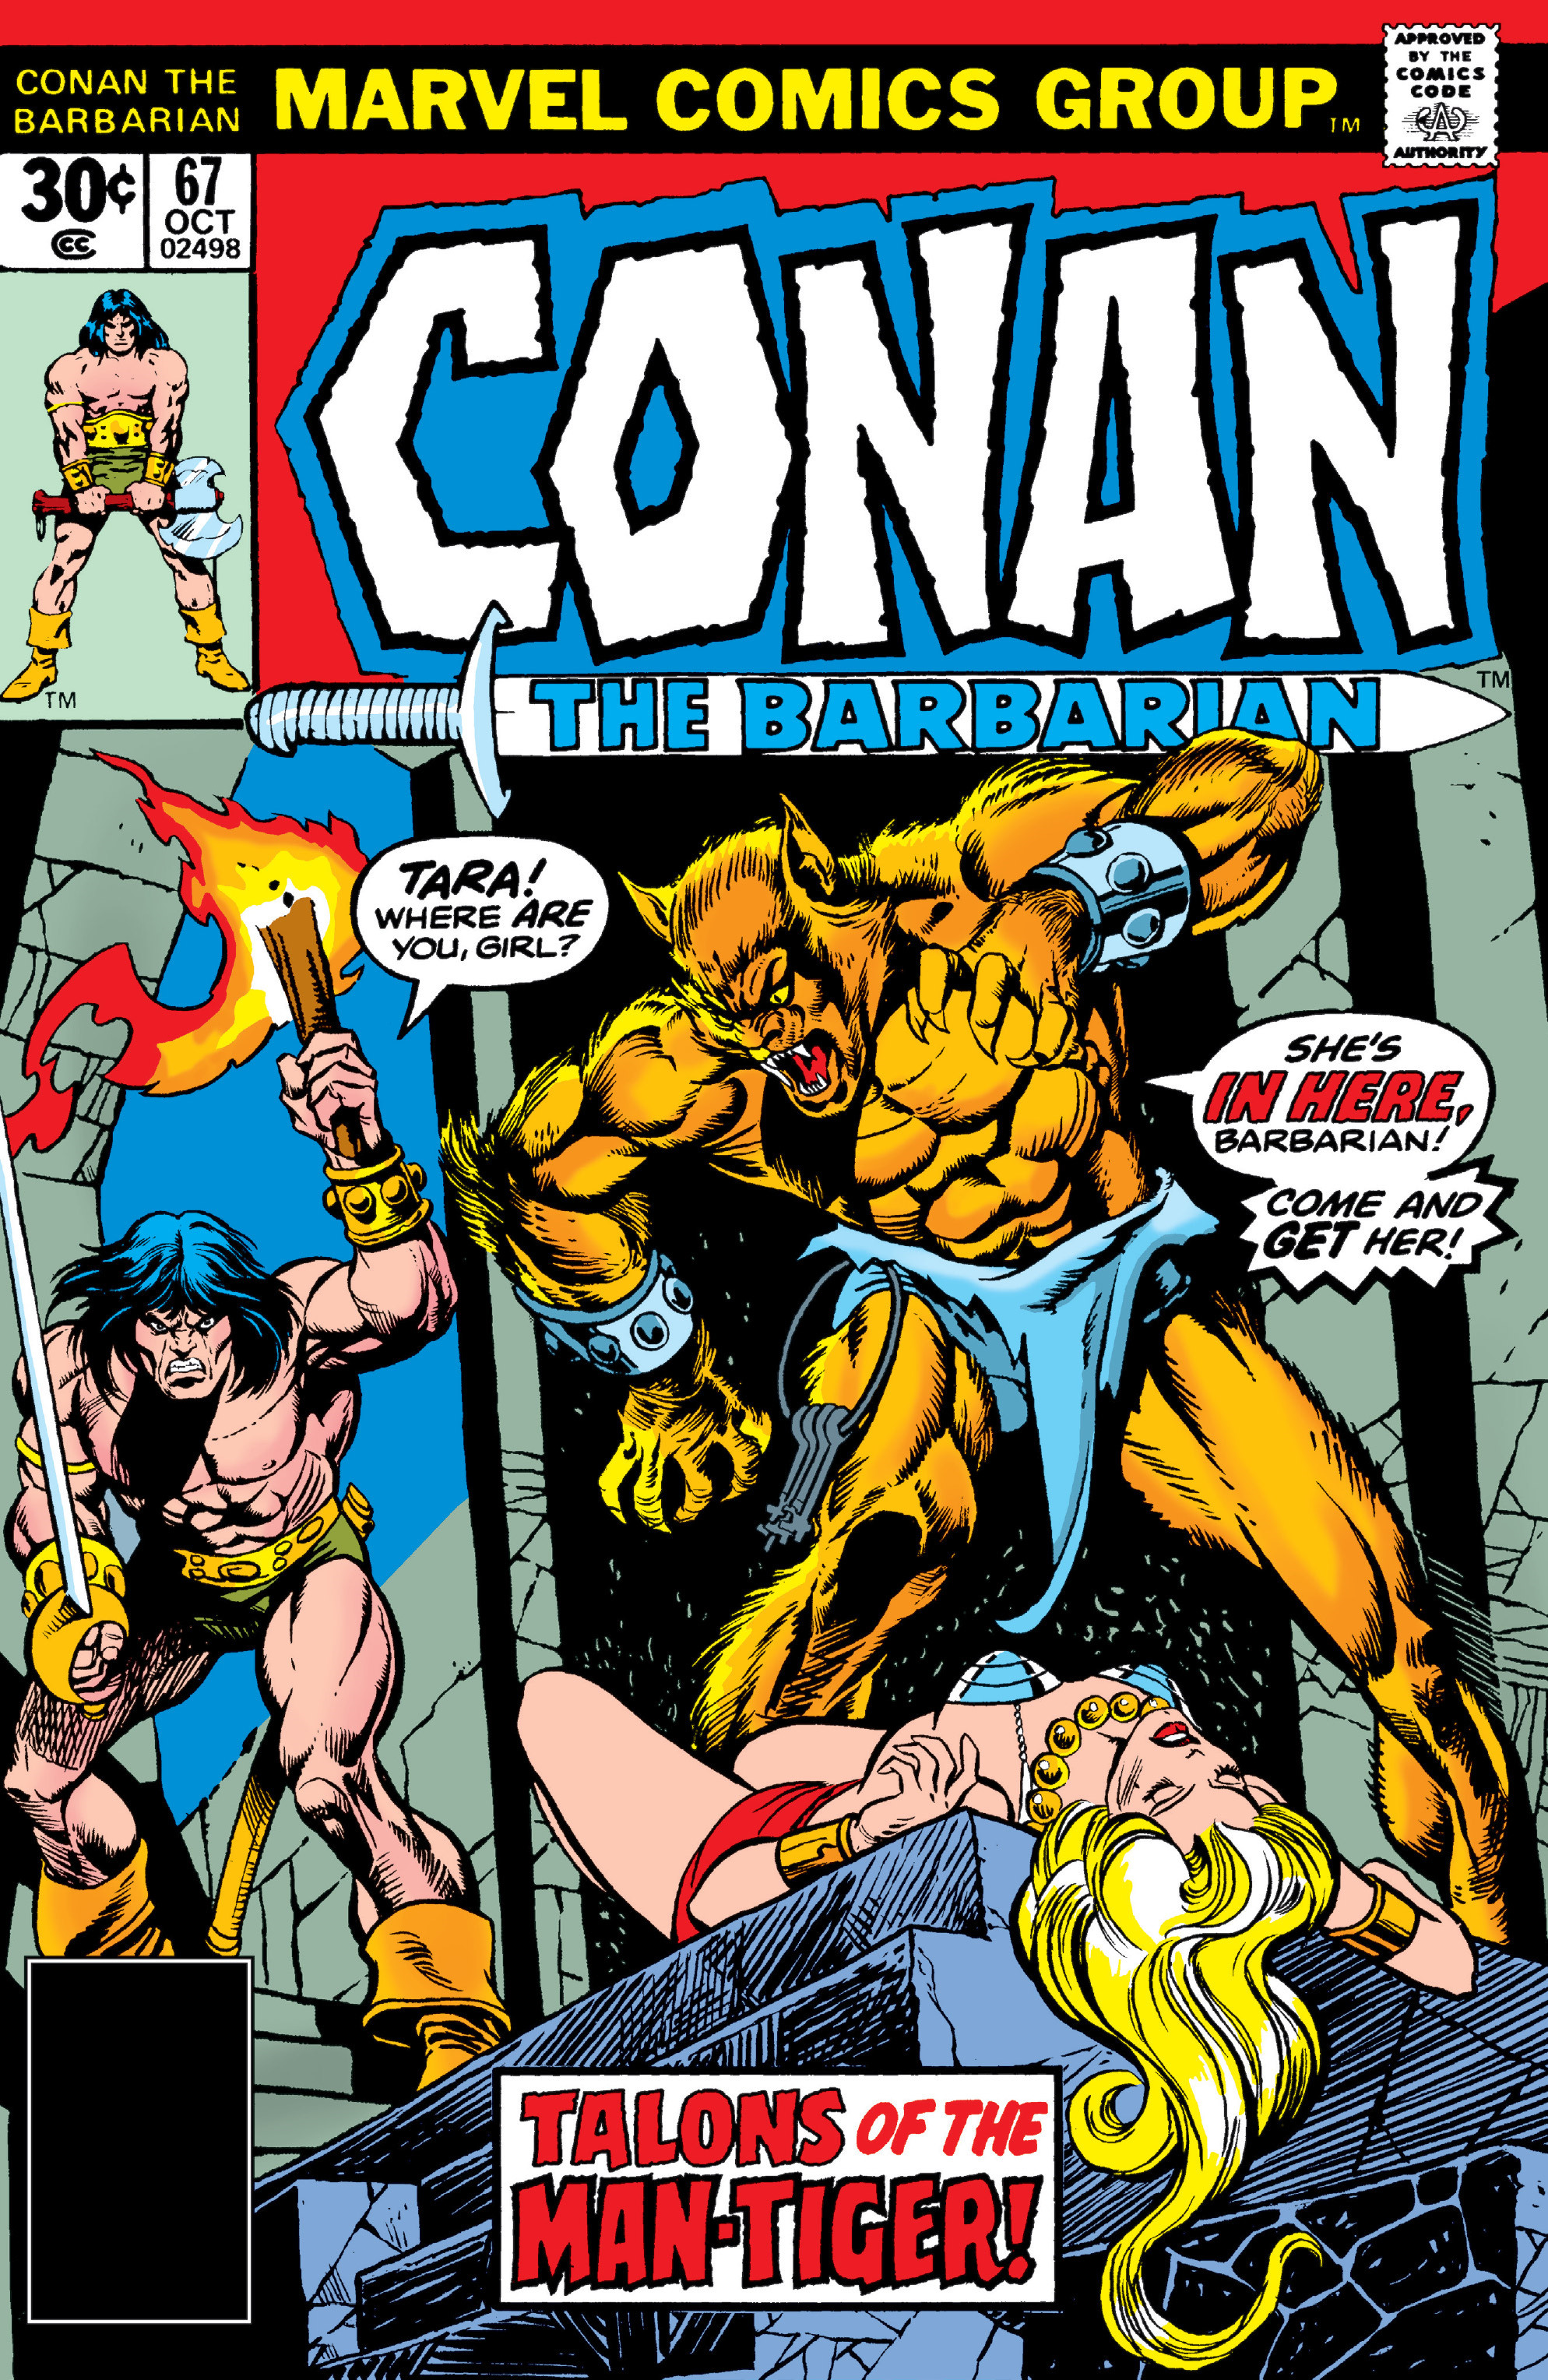 Conan the Barbarian Vol 1 67